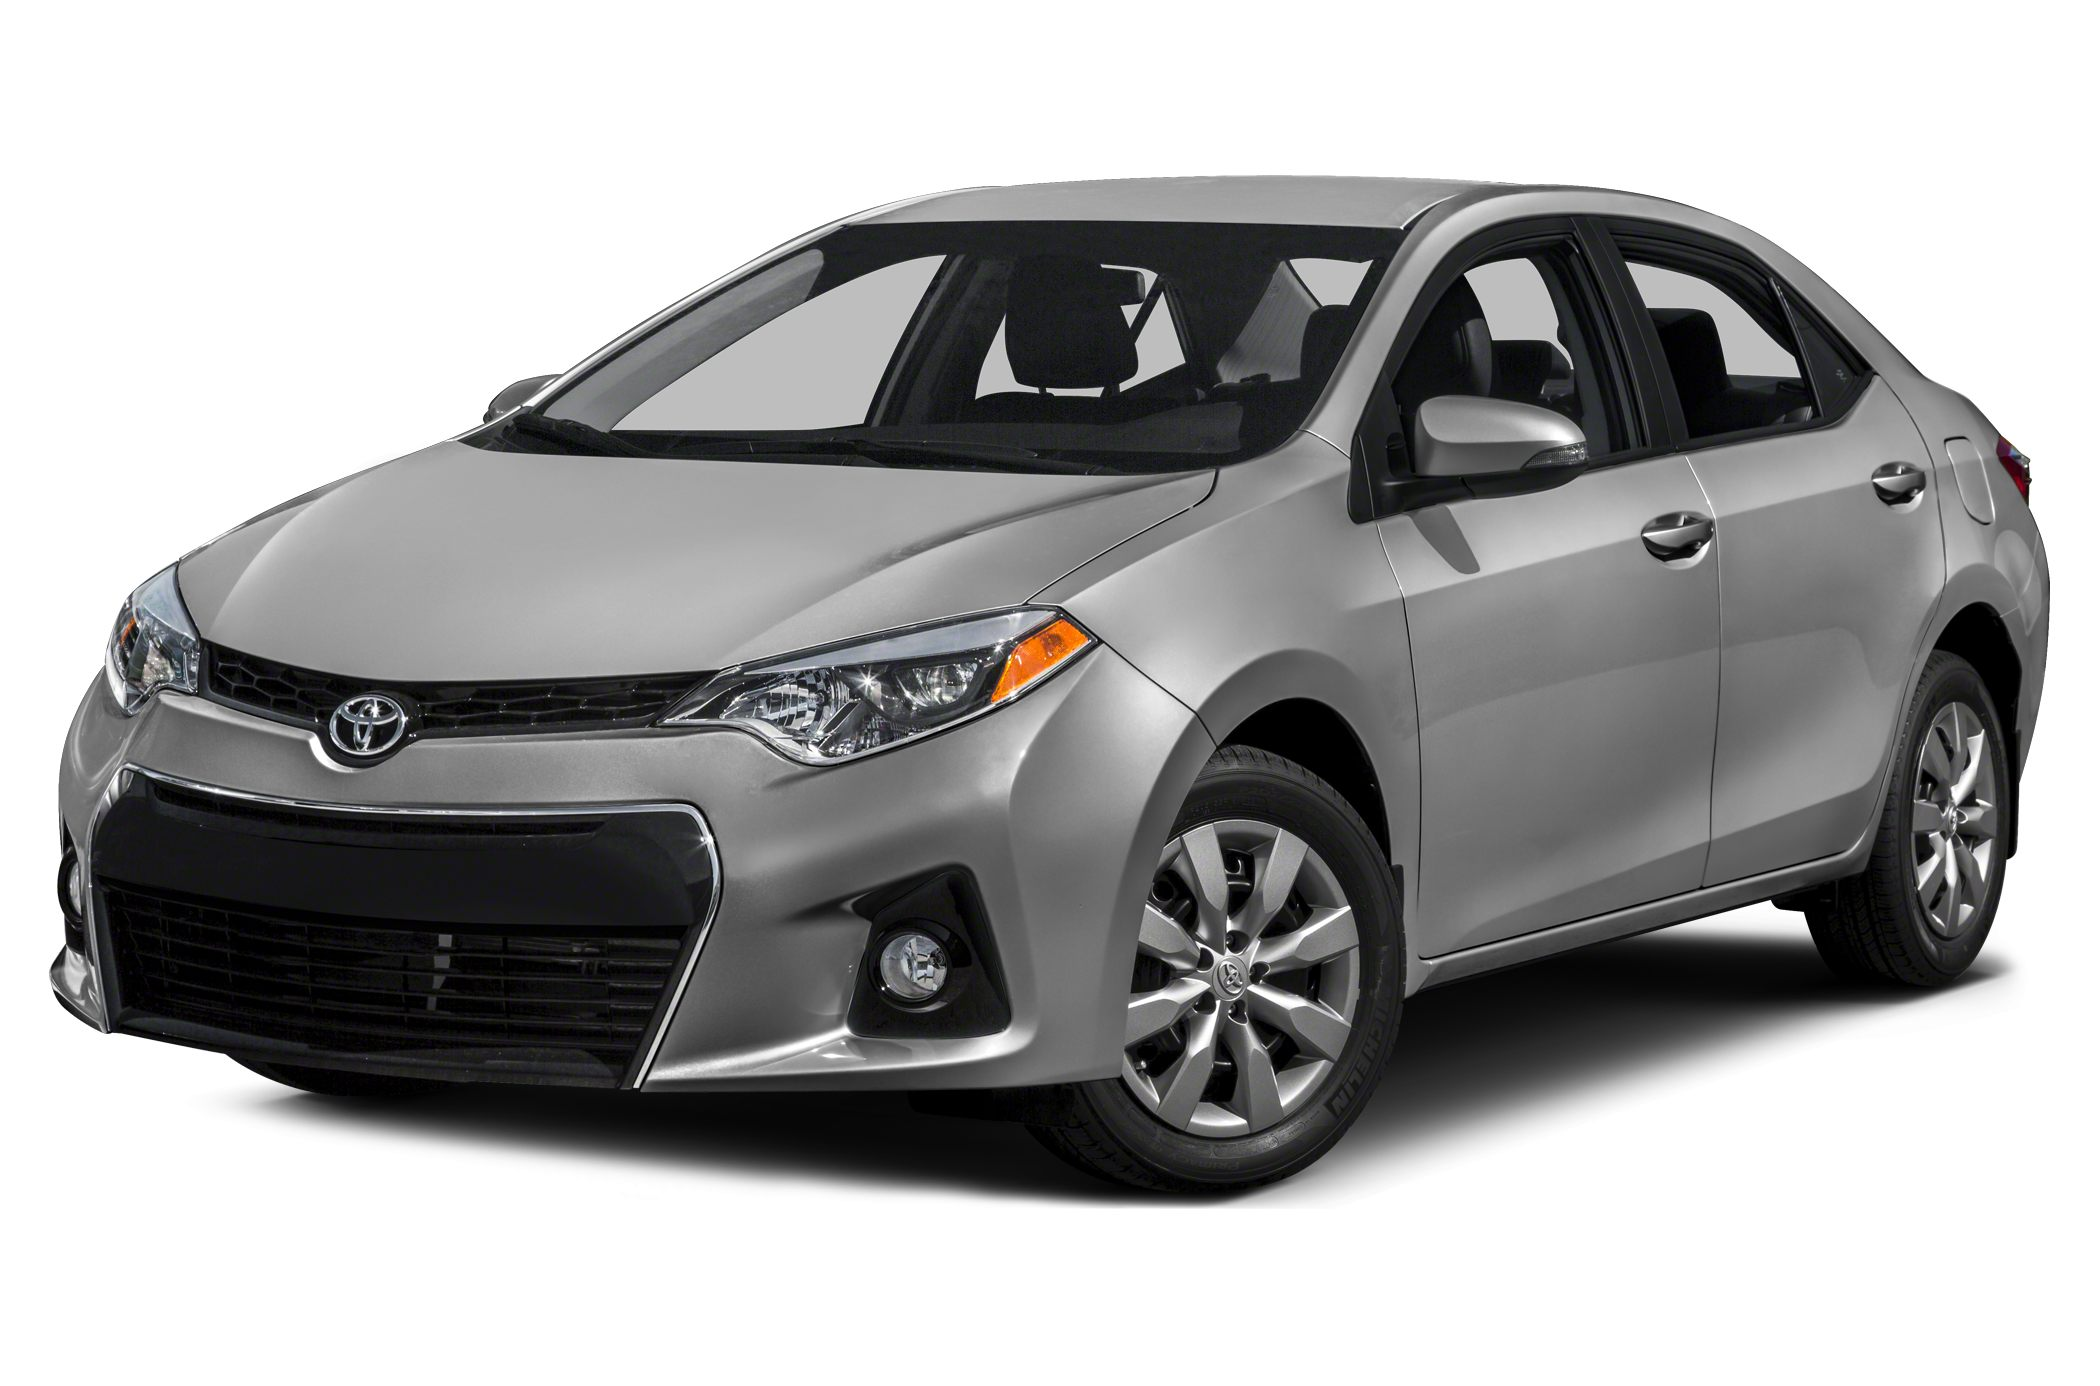 2015 Toyota Corolla S Plus Sedan for sale in Alexandria for $16,744 with 4 miles